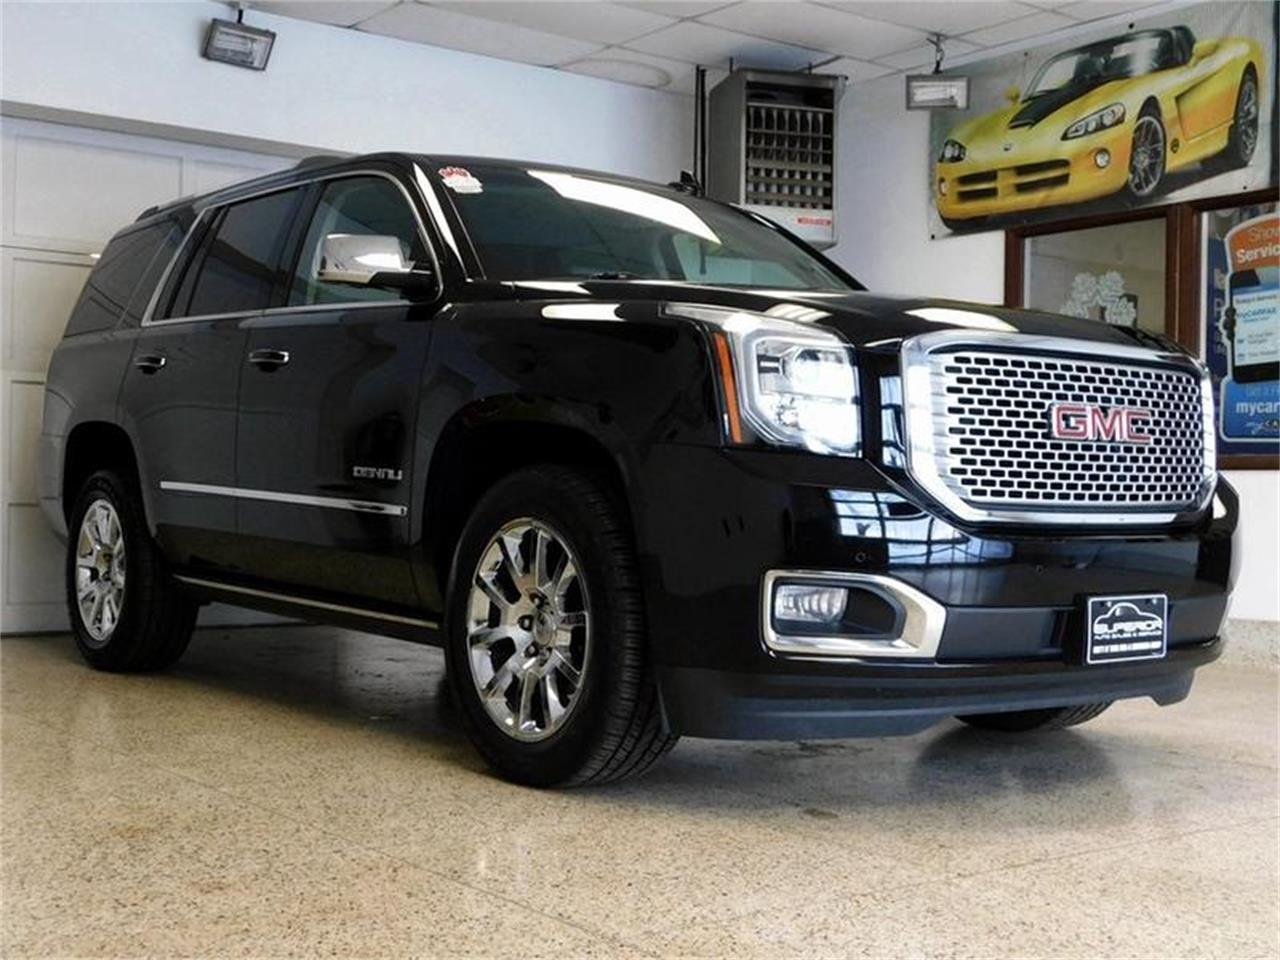 Large Picture of '15 GMC Yukon Denali located in New York - $39,500.00 - P3JC